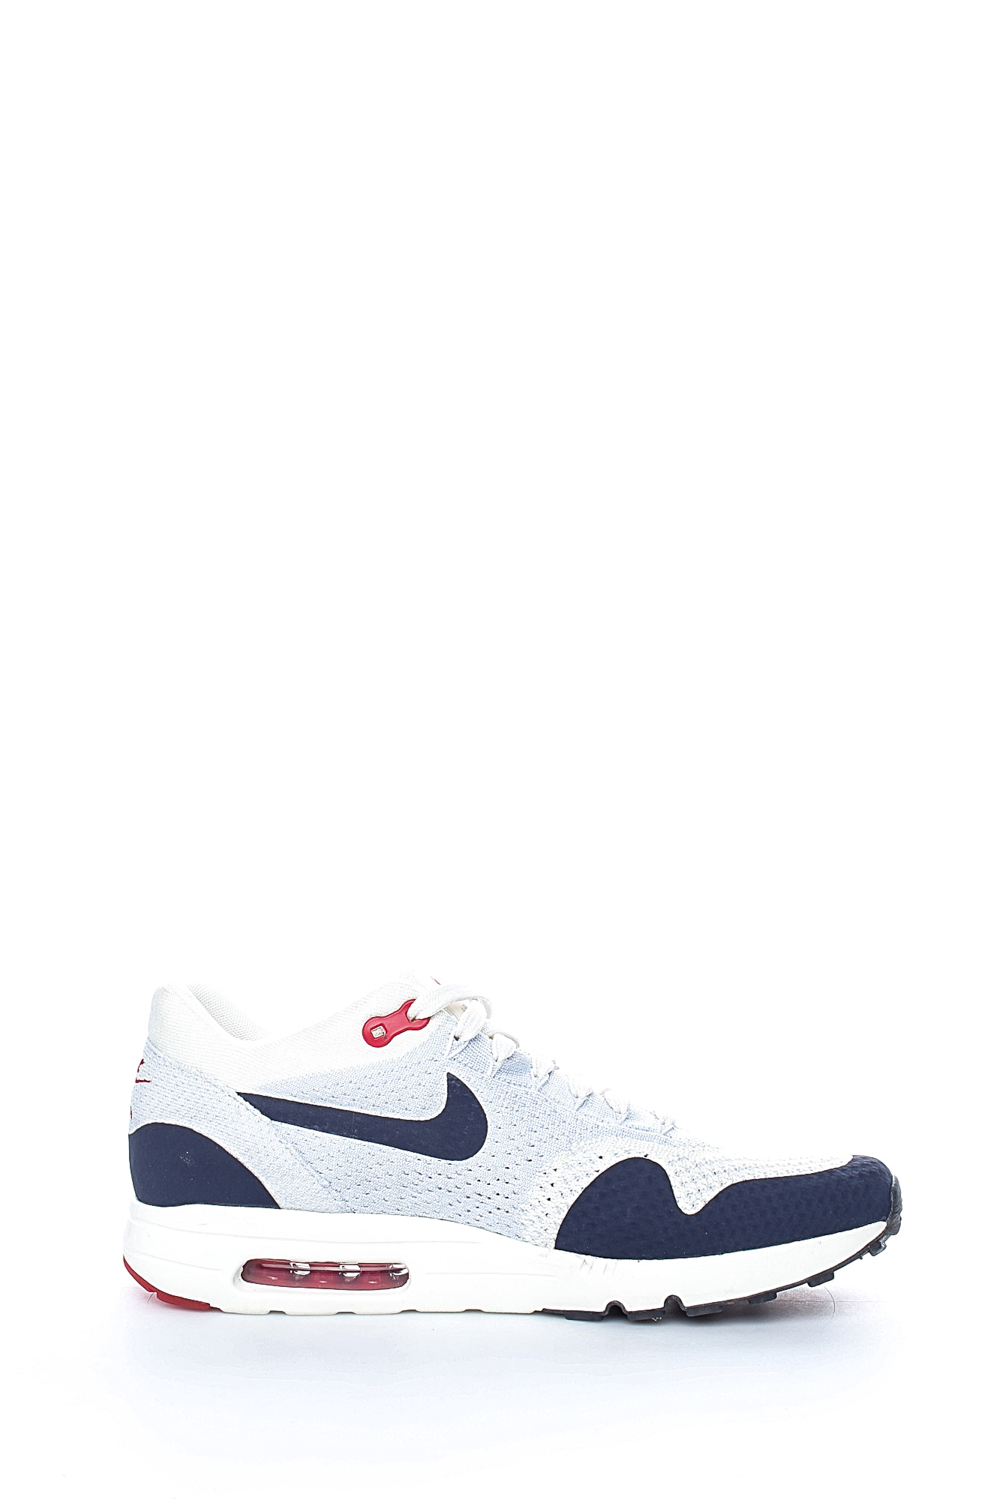 -51% Factory Outlet NIKE – Ανδρικά αθλητικά παπούτσια Nike AIR MAX 1 ULTRA  2.0 FLYKNIT λευκά – μπλε 7d92c87b28e